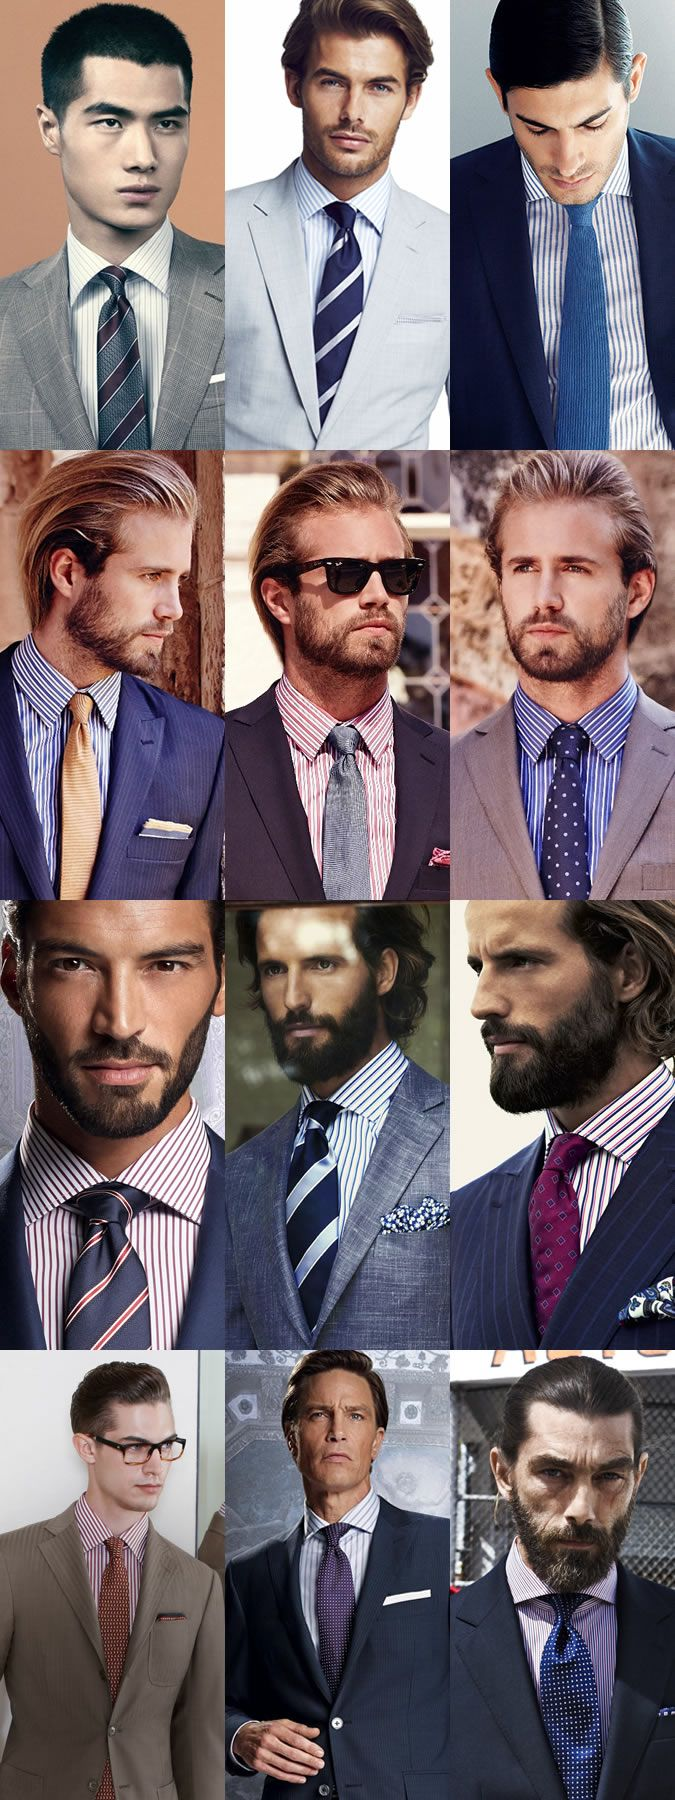 Men 39 s striped shirts and tie combinations lookbook from Blue suit shirt tie combinations